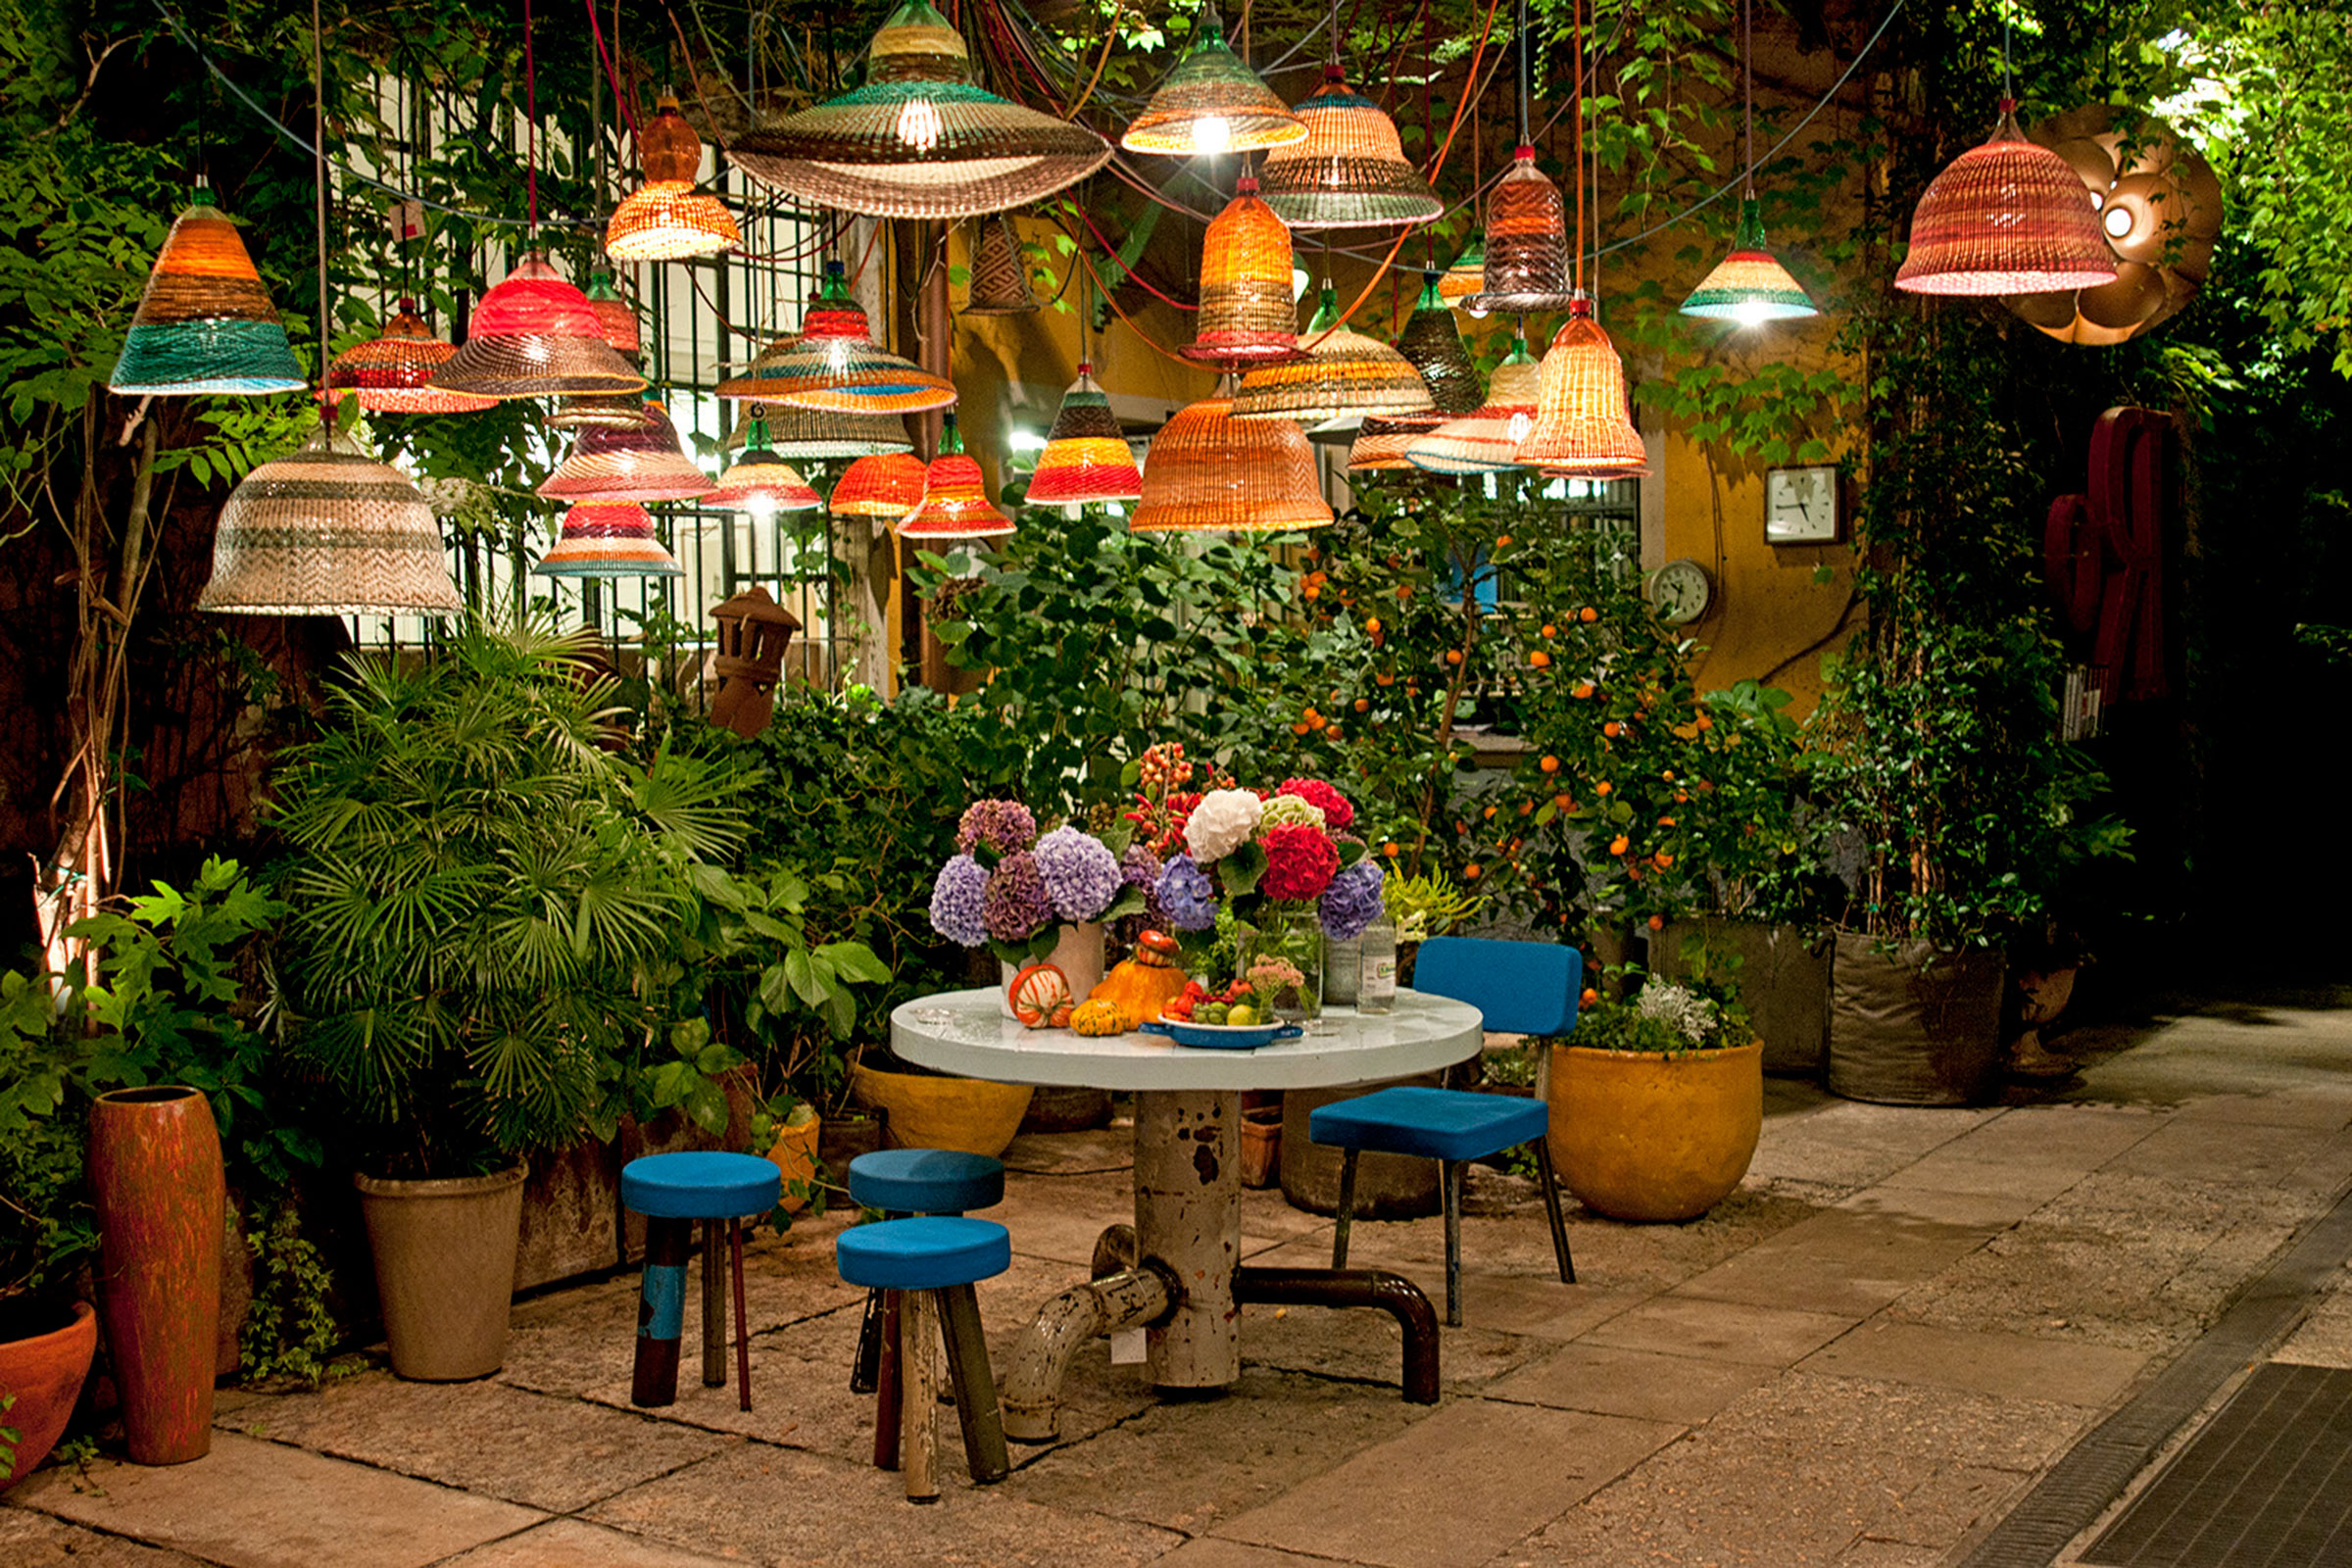 The courtyard at Galleria Rossana Orlandi. Image courtesy of Galleria Rossana Orlandi